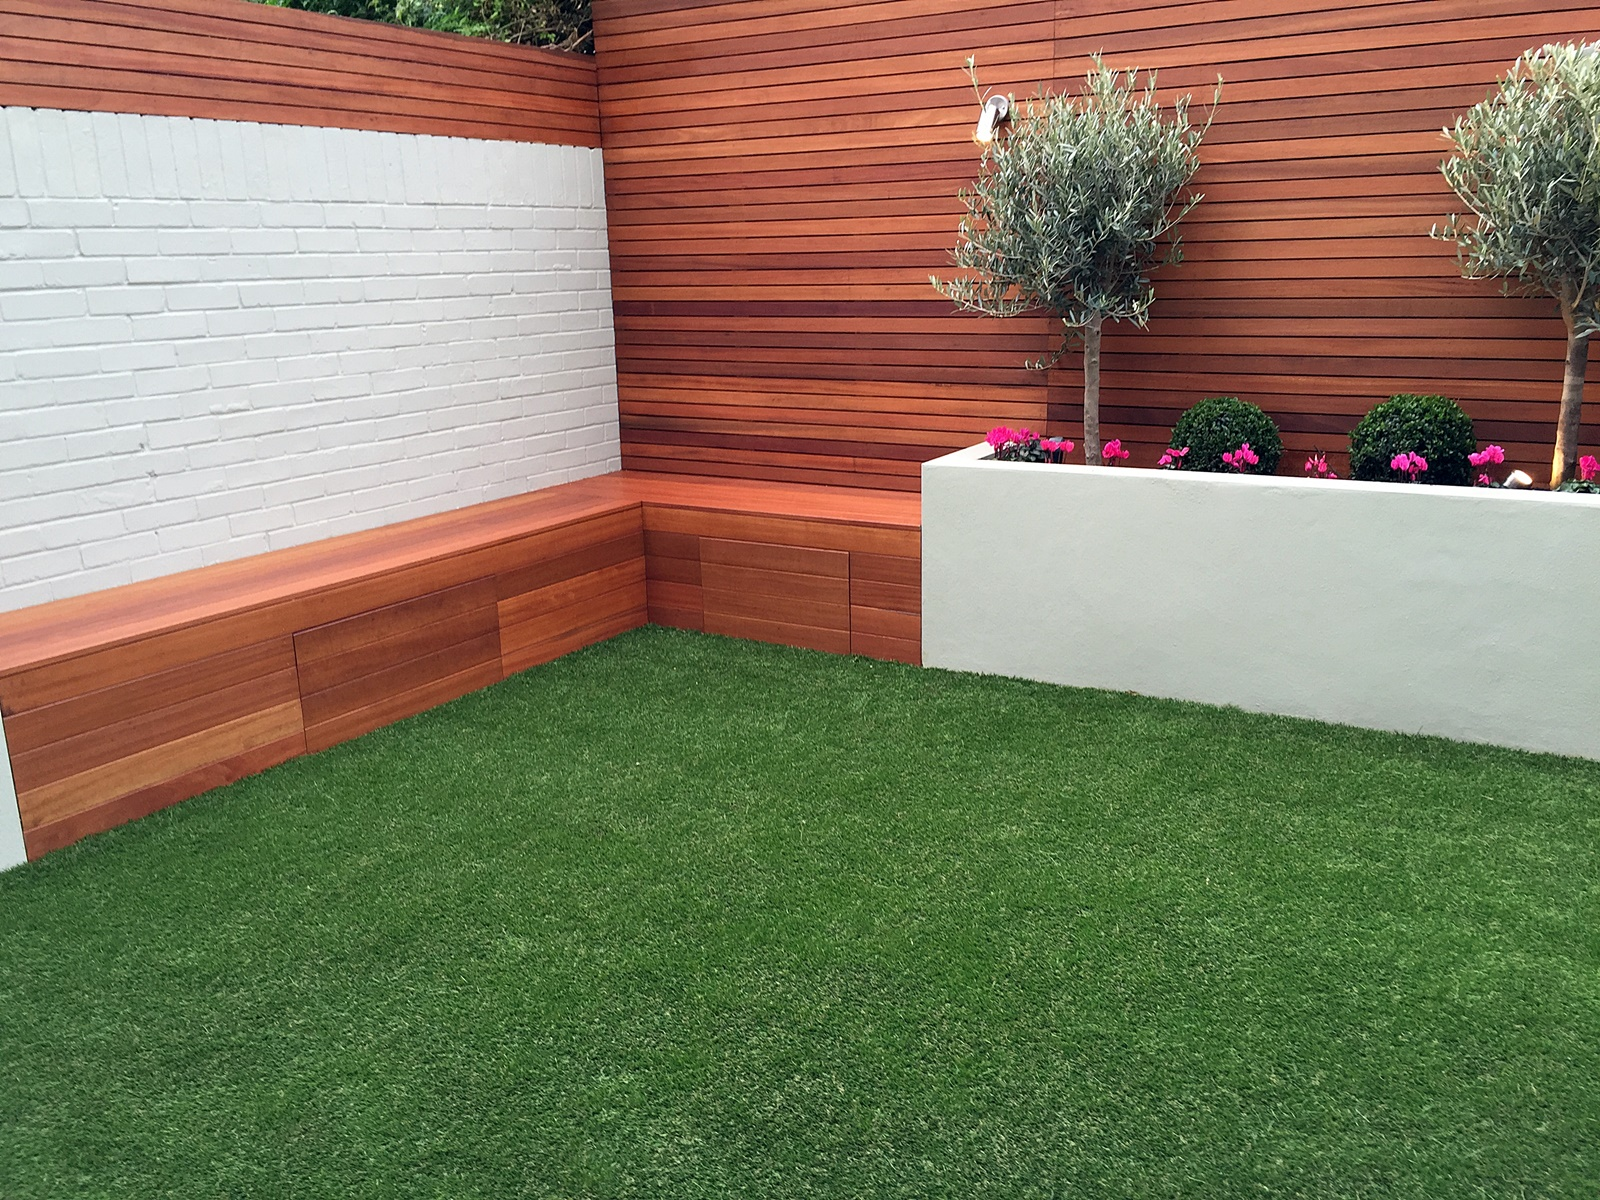 Simple modern court yard garden designer battersea fulham for Modern garden design ideas